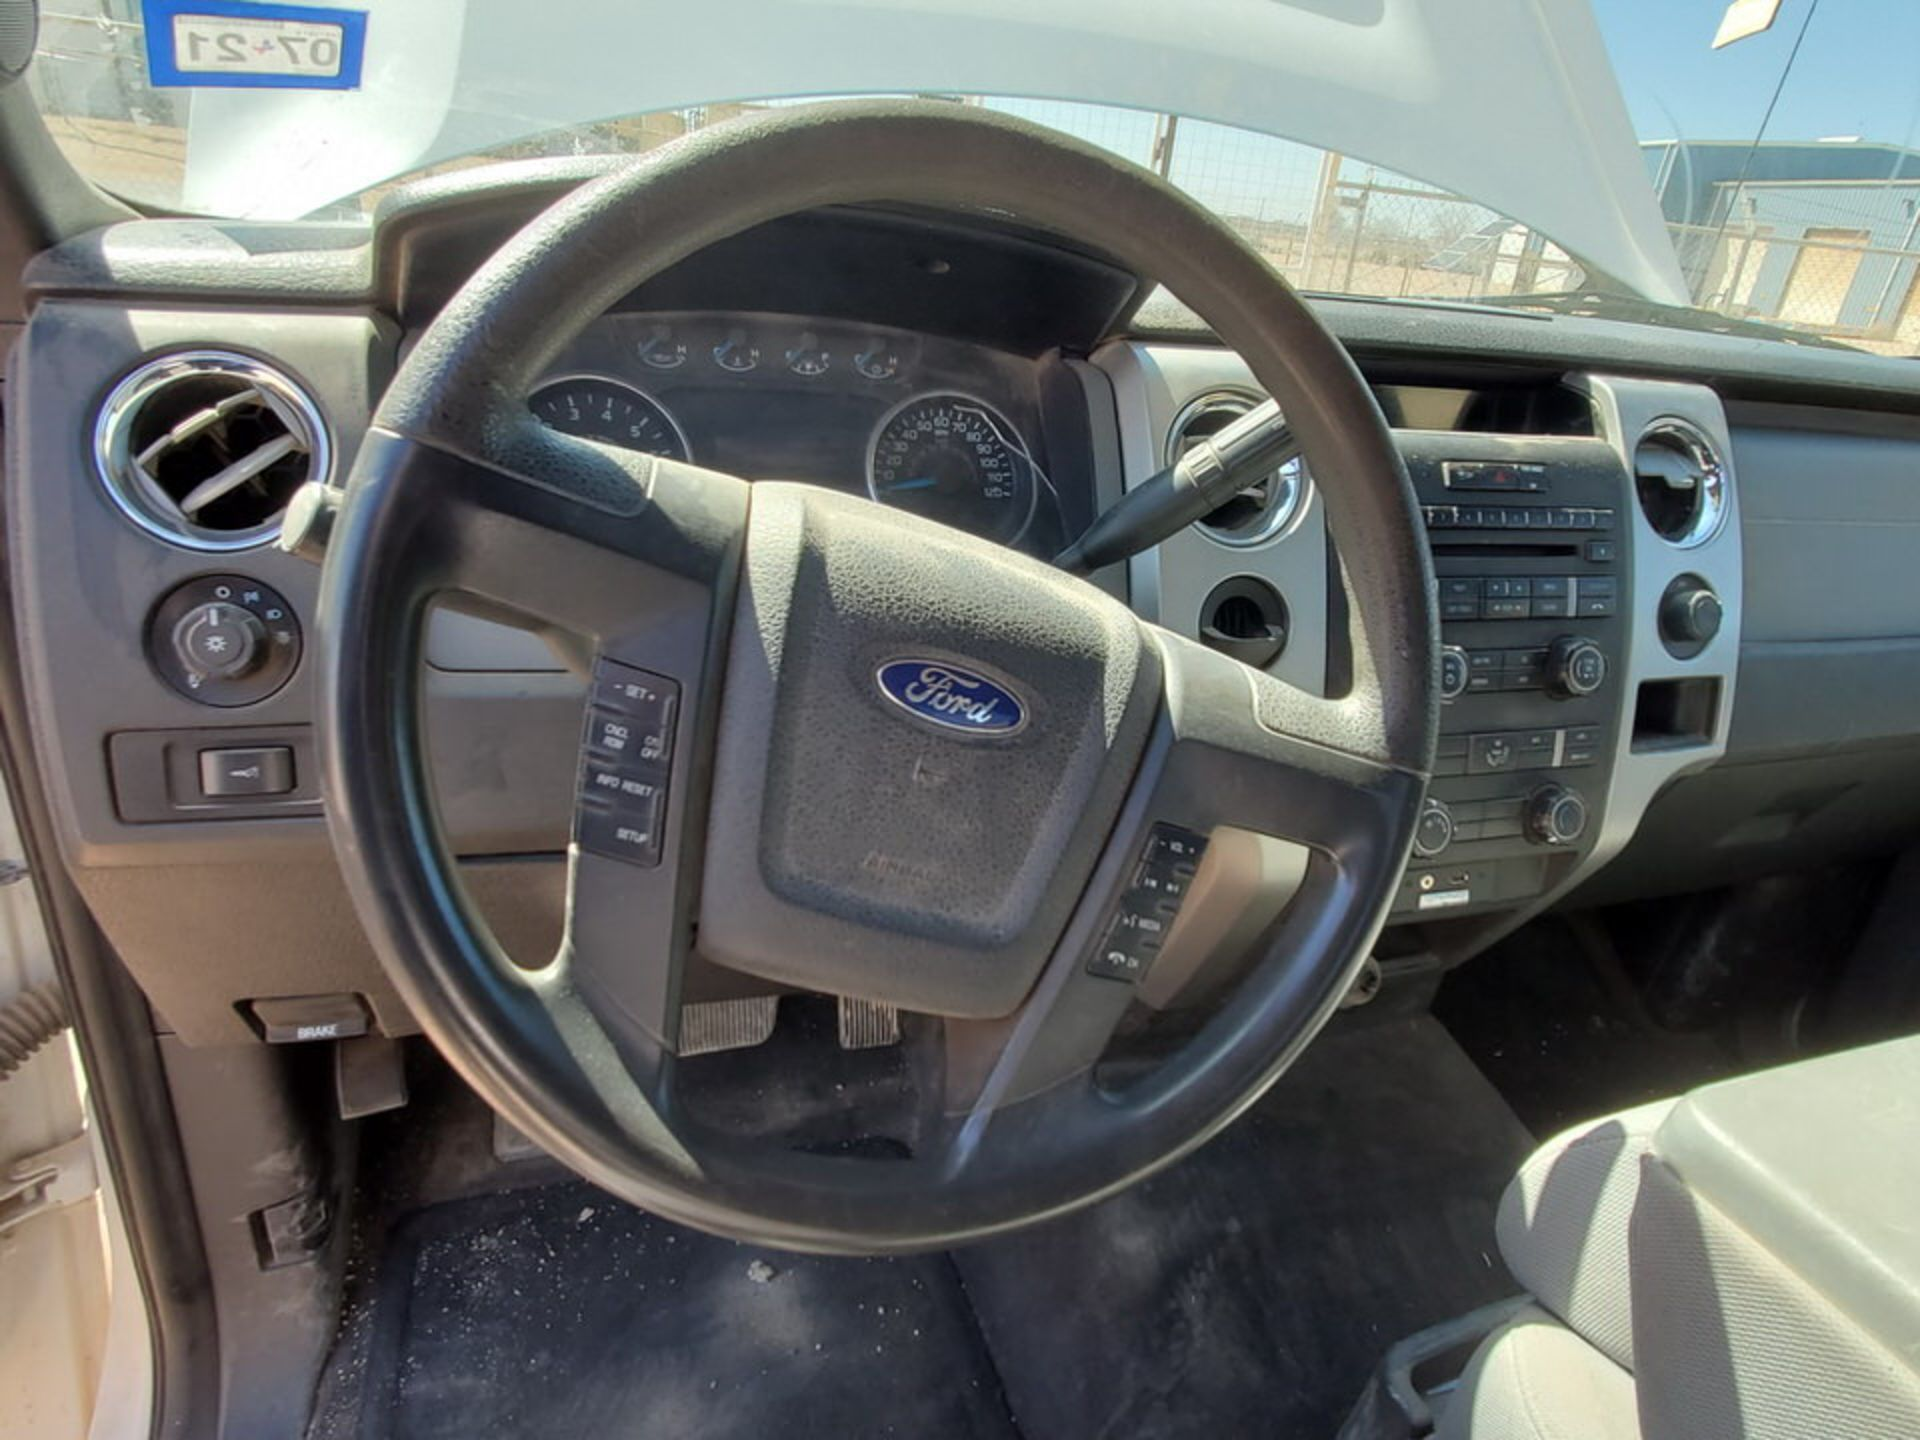 2013 Ford F150 Pickup Vin: 1FTFW1CF0DKF14097, TX Plates: CFT 3081, W/ 6.2L Engine - Image 7 of 19